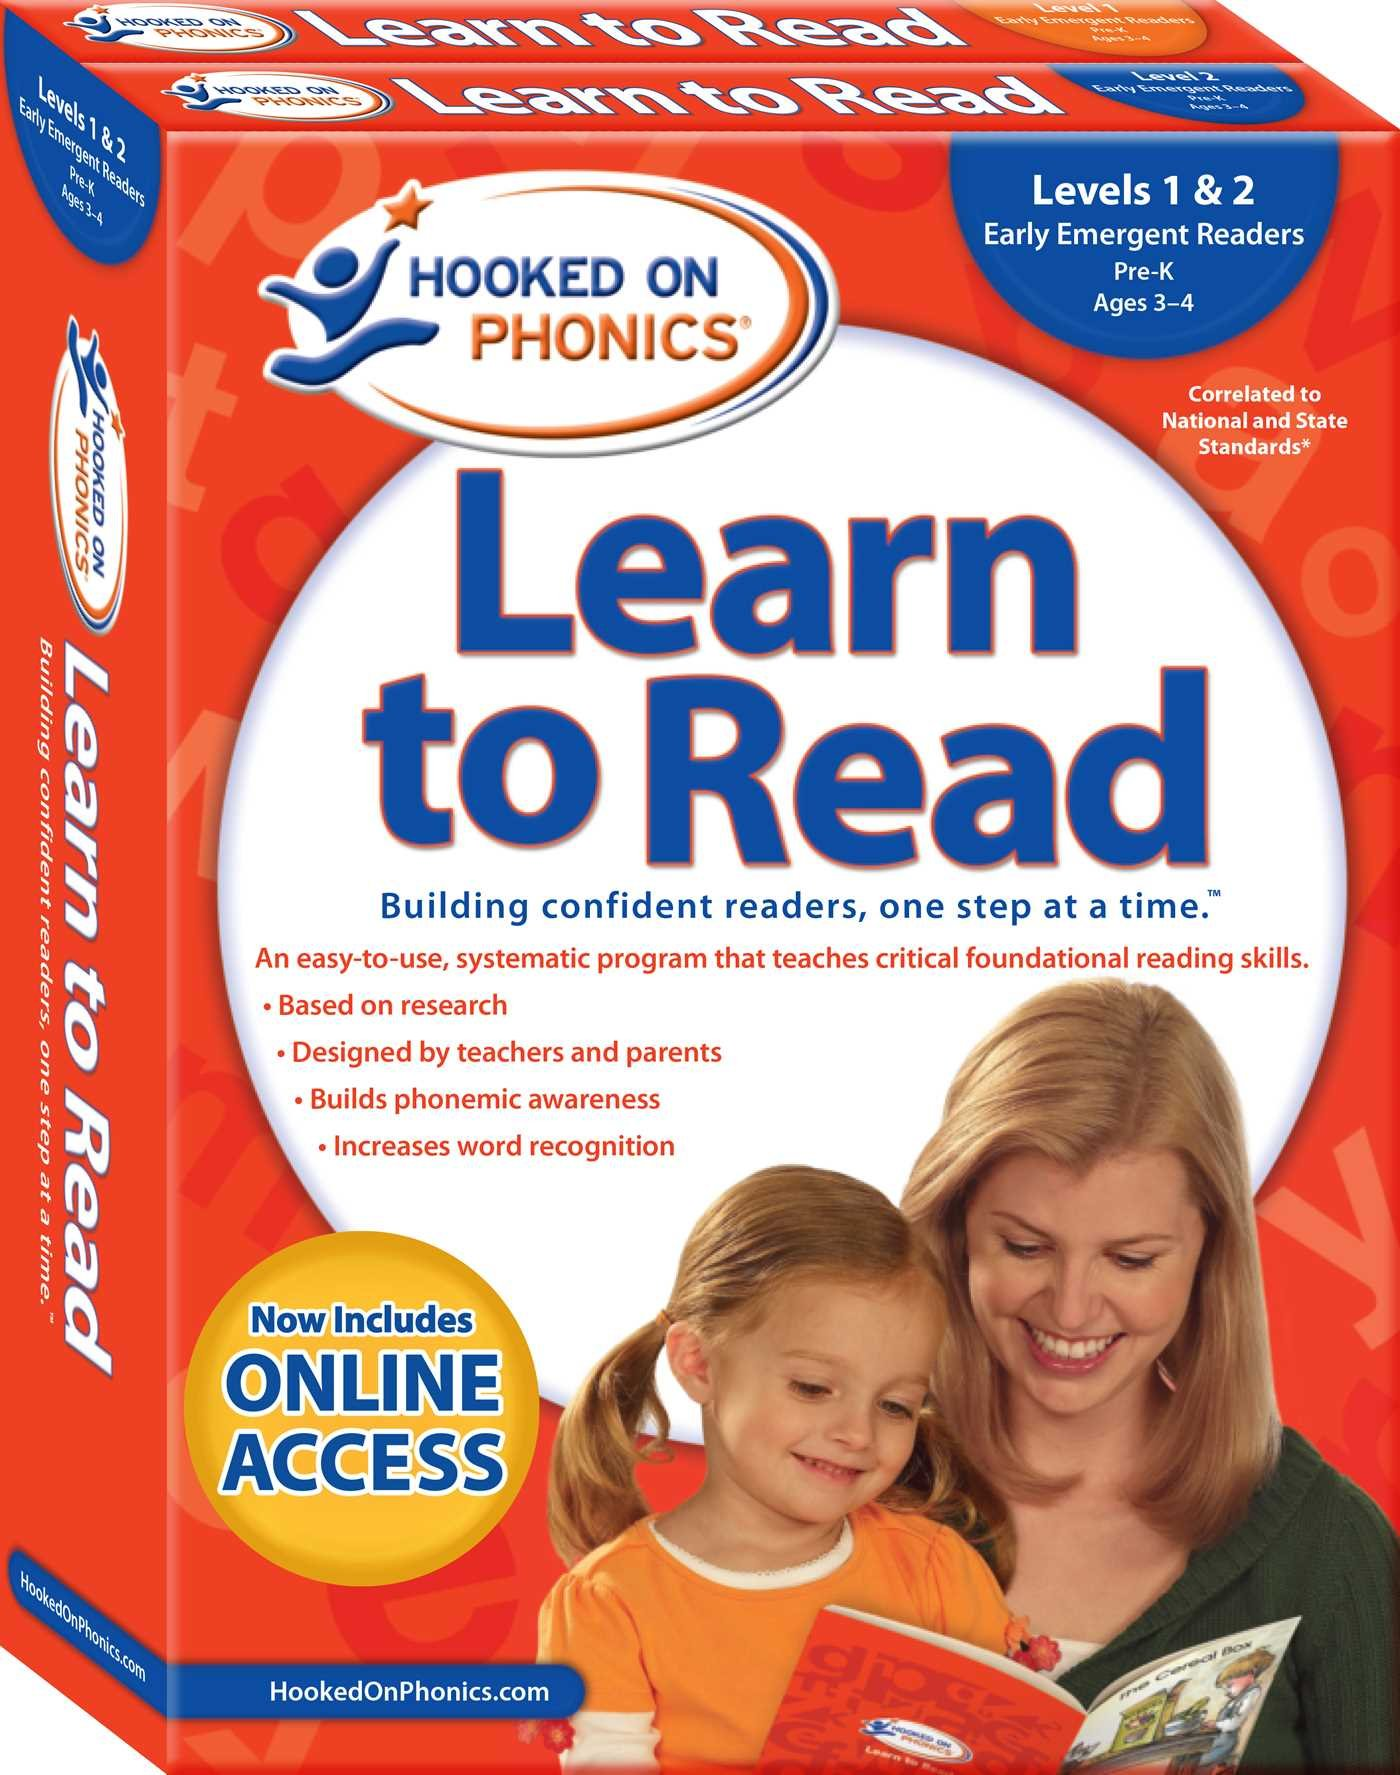 Hooked on Phonics Learn to Read - Levels 1&2 Complete: Early Emergent Readers (Pre-K | Ages 3-4) (1) (Learn to Read Complete Sets) by Hooked on Phonics